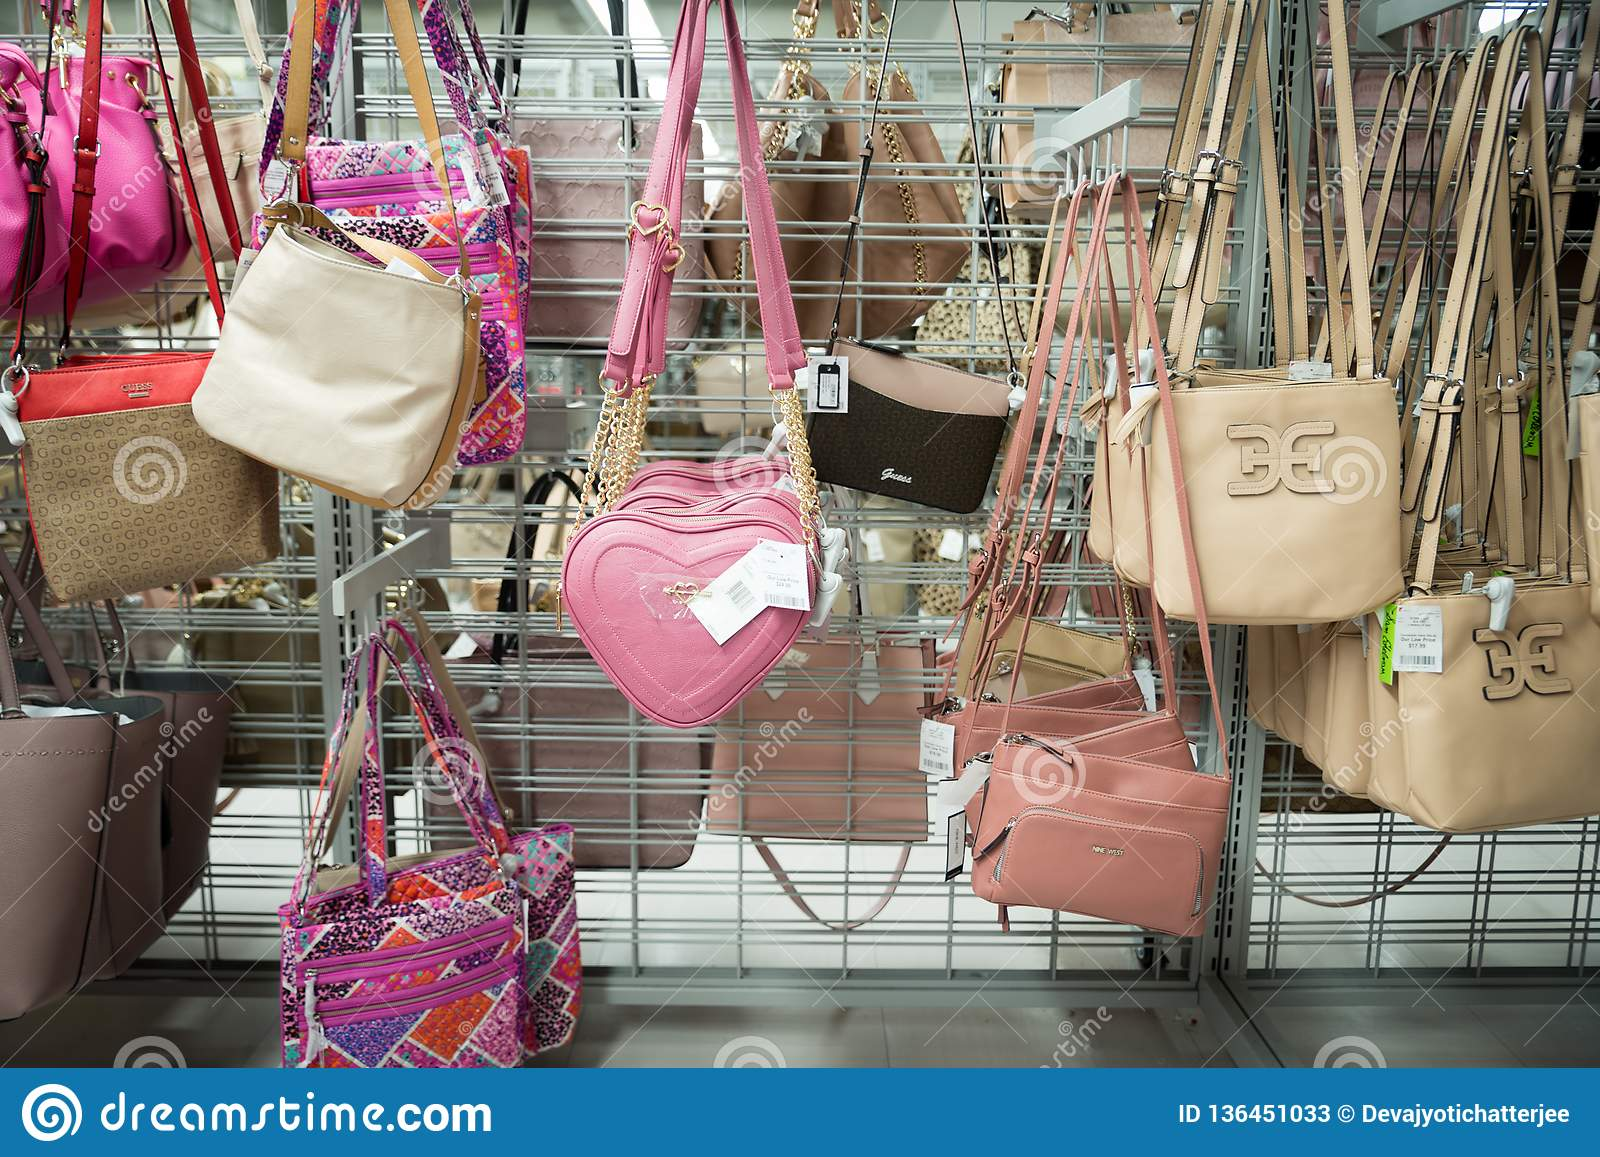 Many womens shoes on a rack at a discount store burlington coat factory. There are stillettos